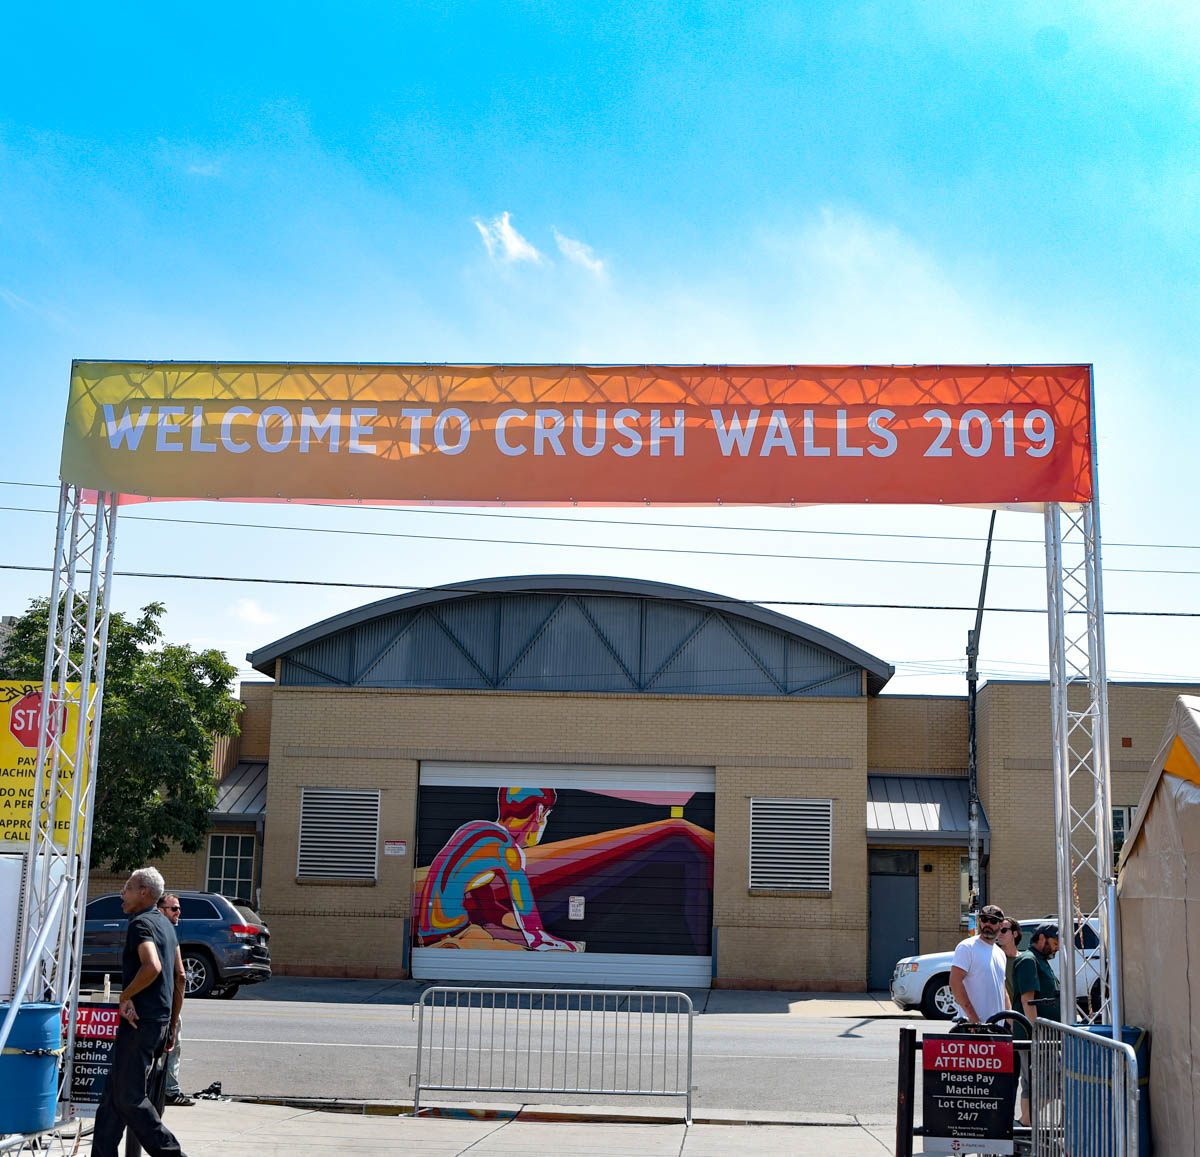 Welcome to Crush Walls 2019 | River North Arts District (RINO) | Denver, CO. | 09/06/2019 | Photos: ©Pix Meyers 2019